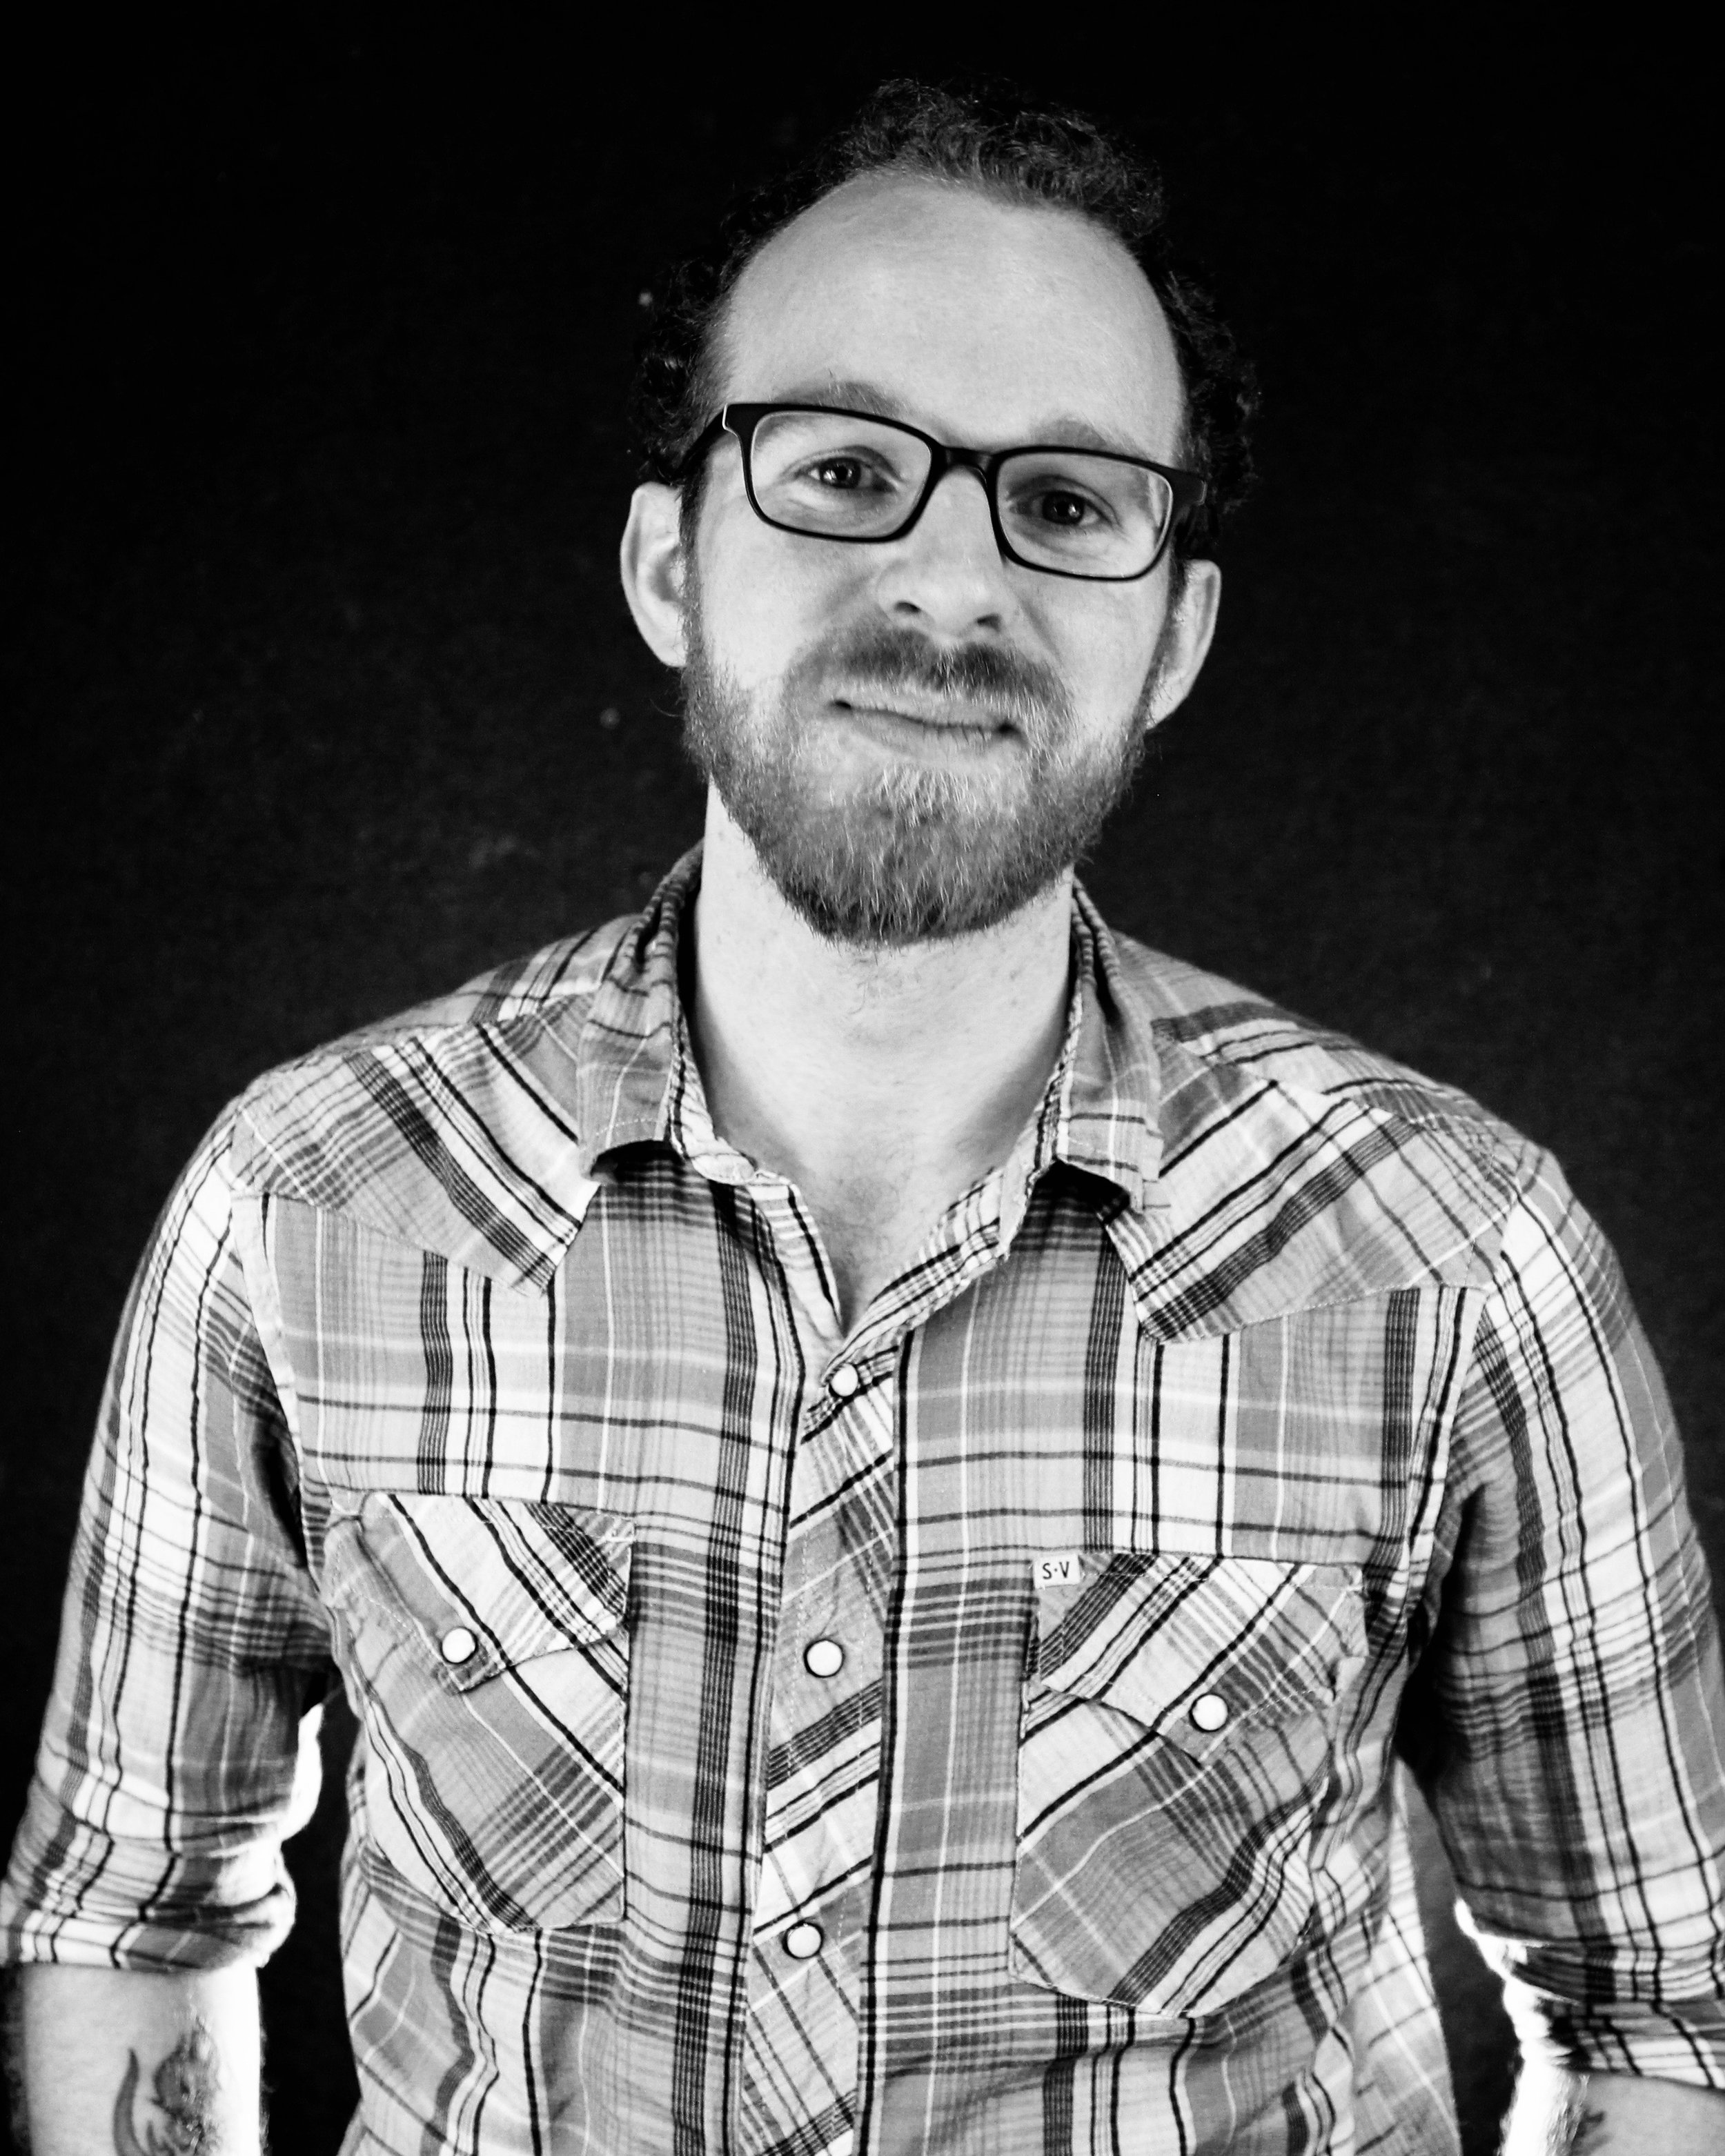 Chris Garrett (Director & Writer) - Is the Director and Writer for Splintered Caravan. He puts his passion into everything that he does and Splintered Caravan is nothing less. He's also produced his own comic book under his self-published Overtime-Comics.